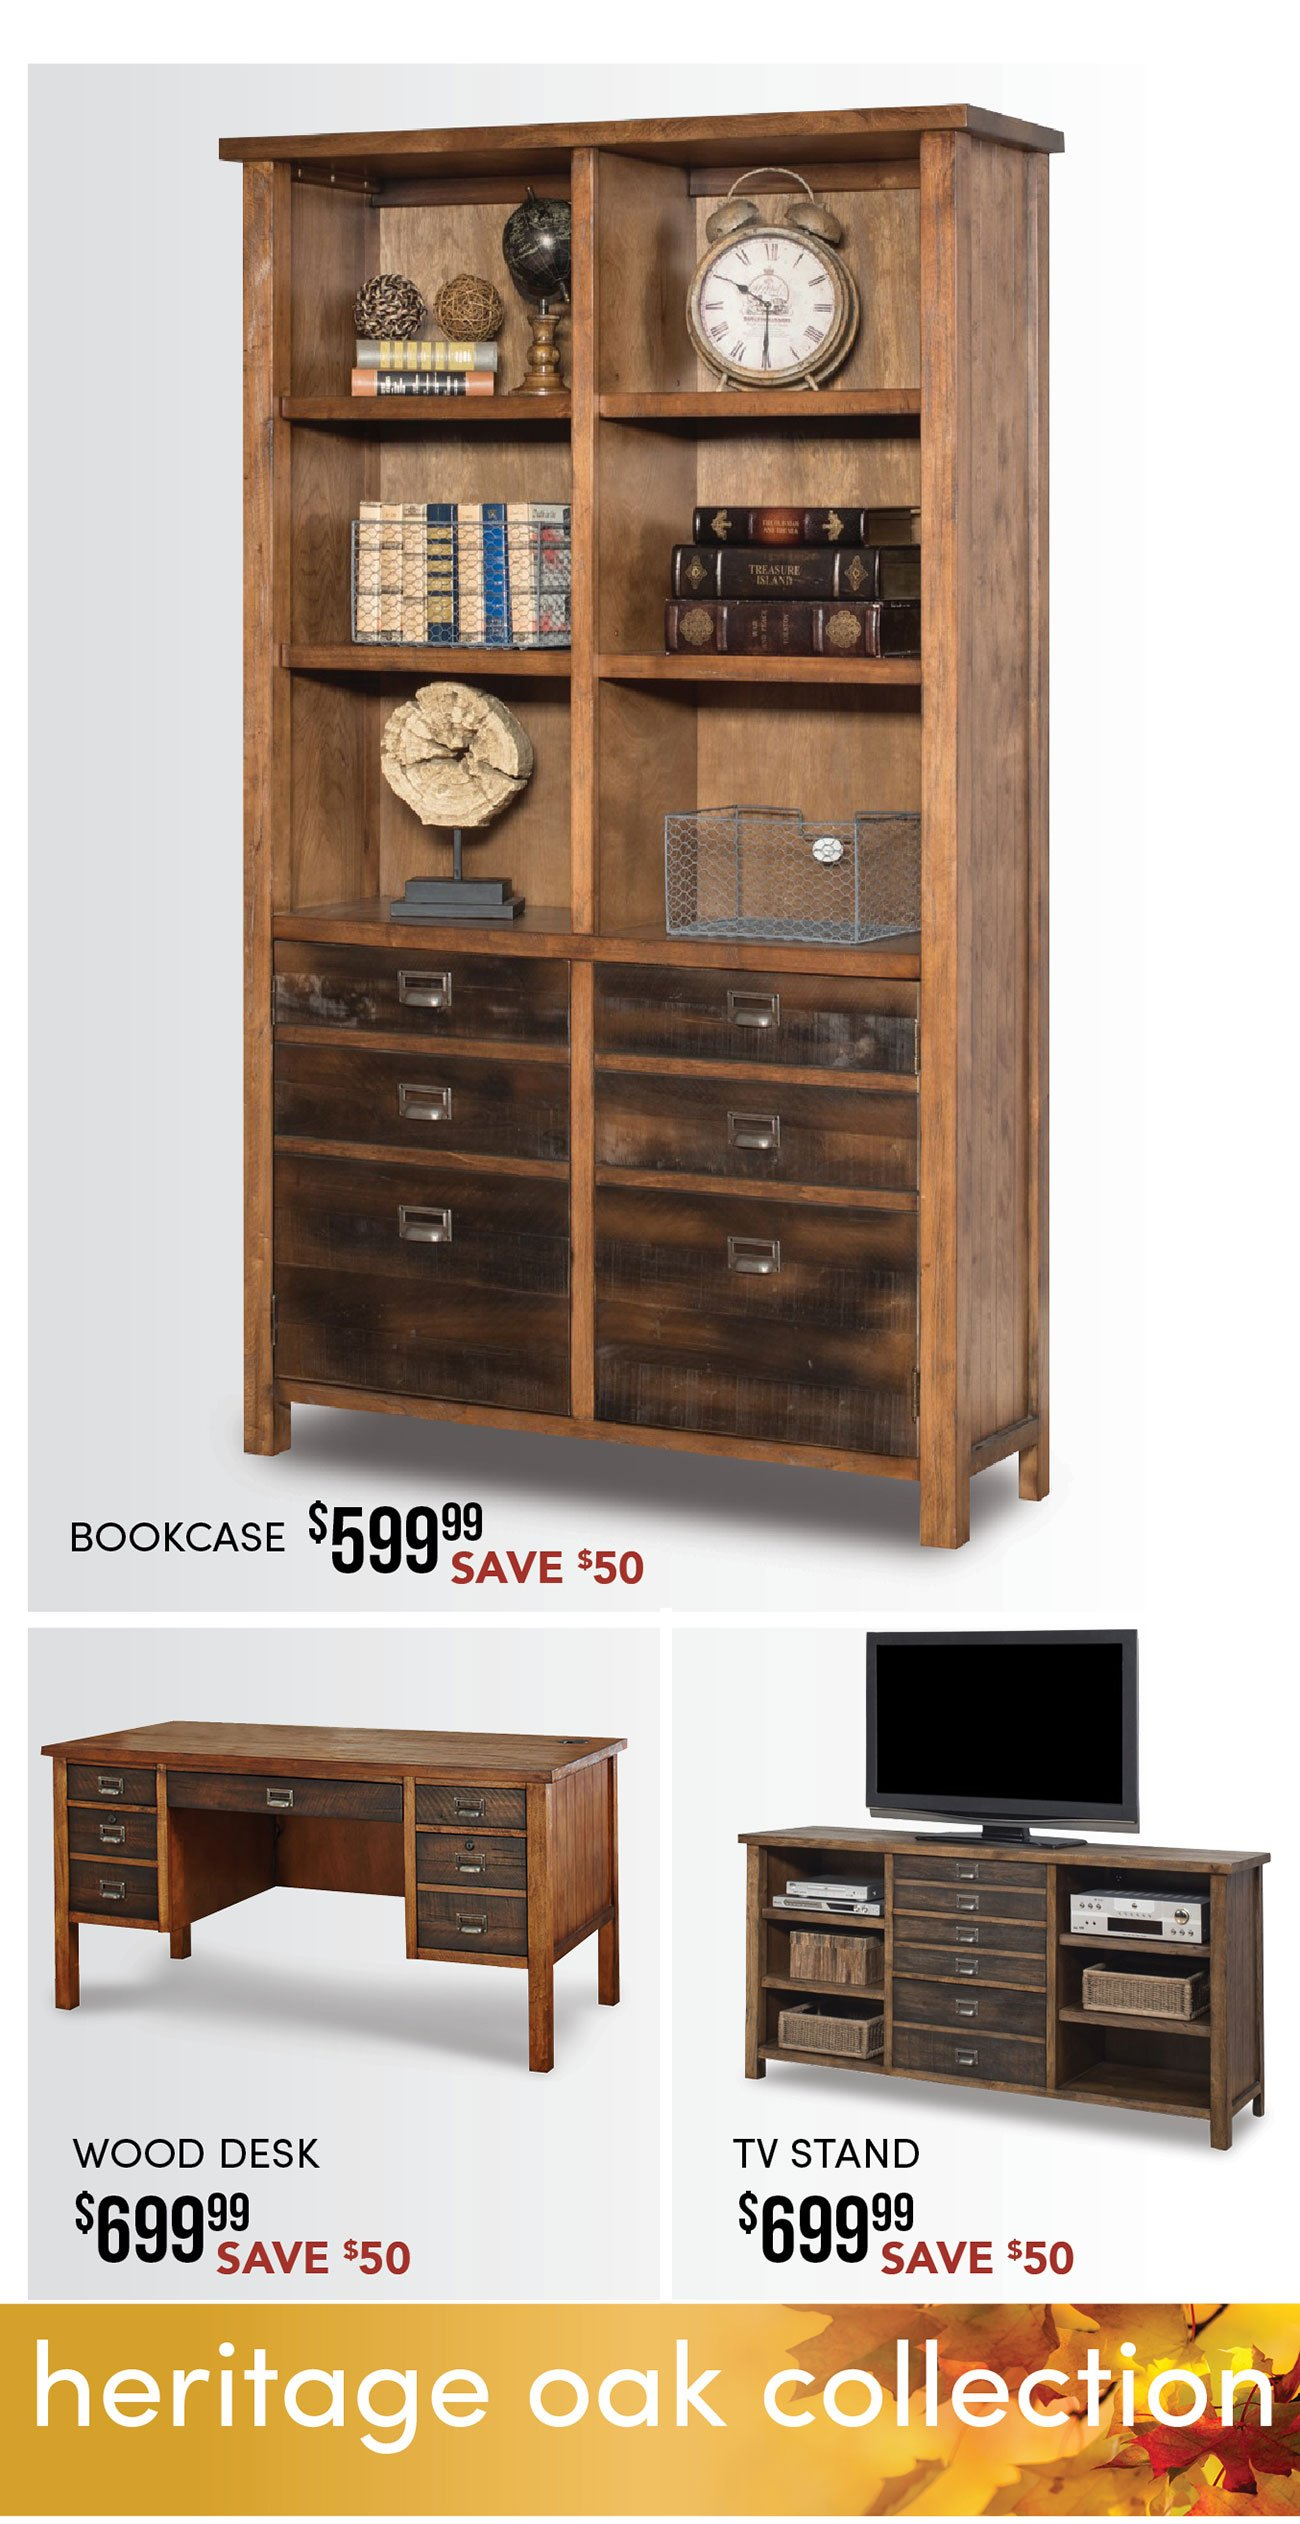 Heritage-oak-collection